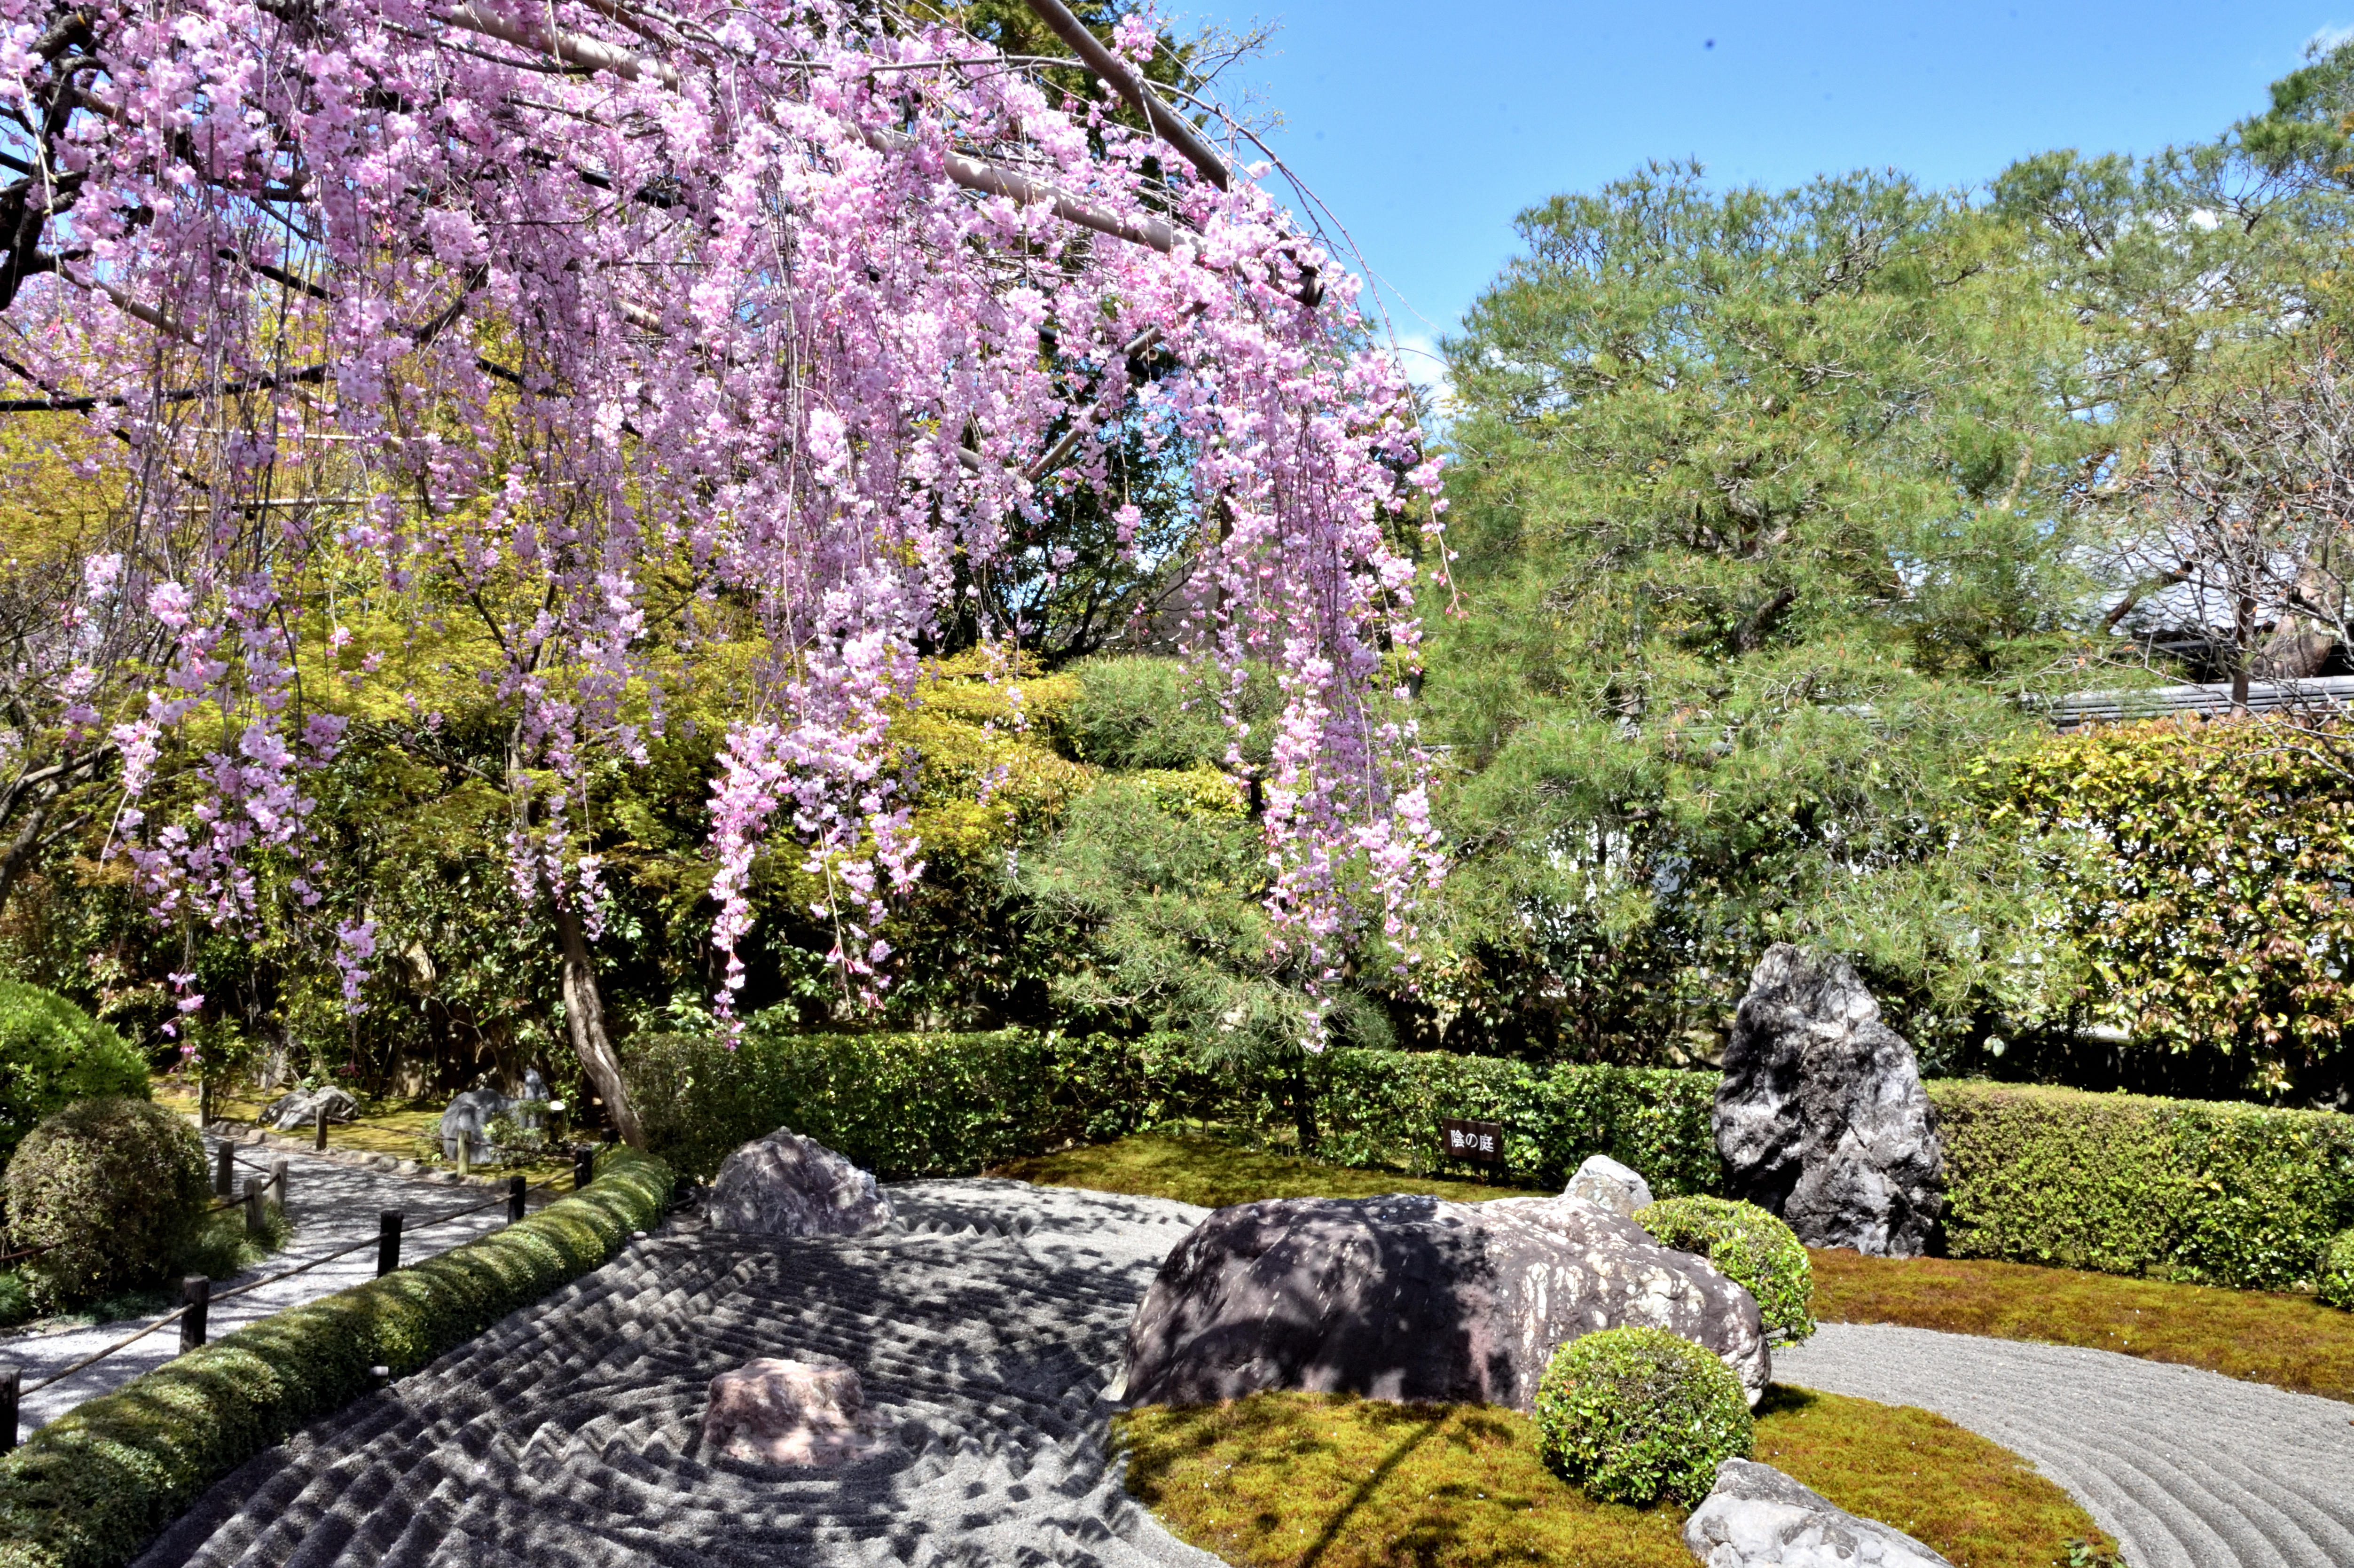 Weeping cherry blossoms and stone garden in Myoshinji temple